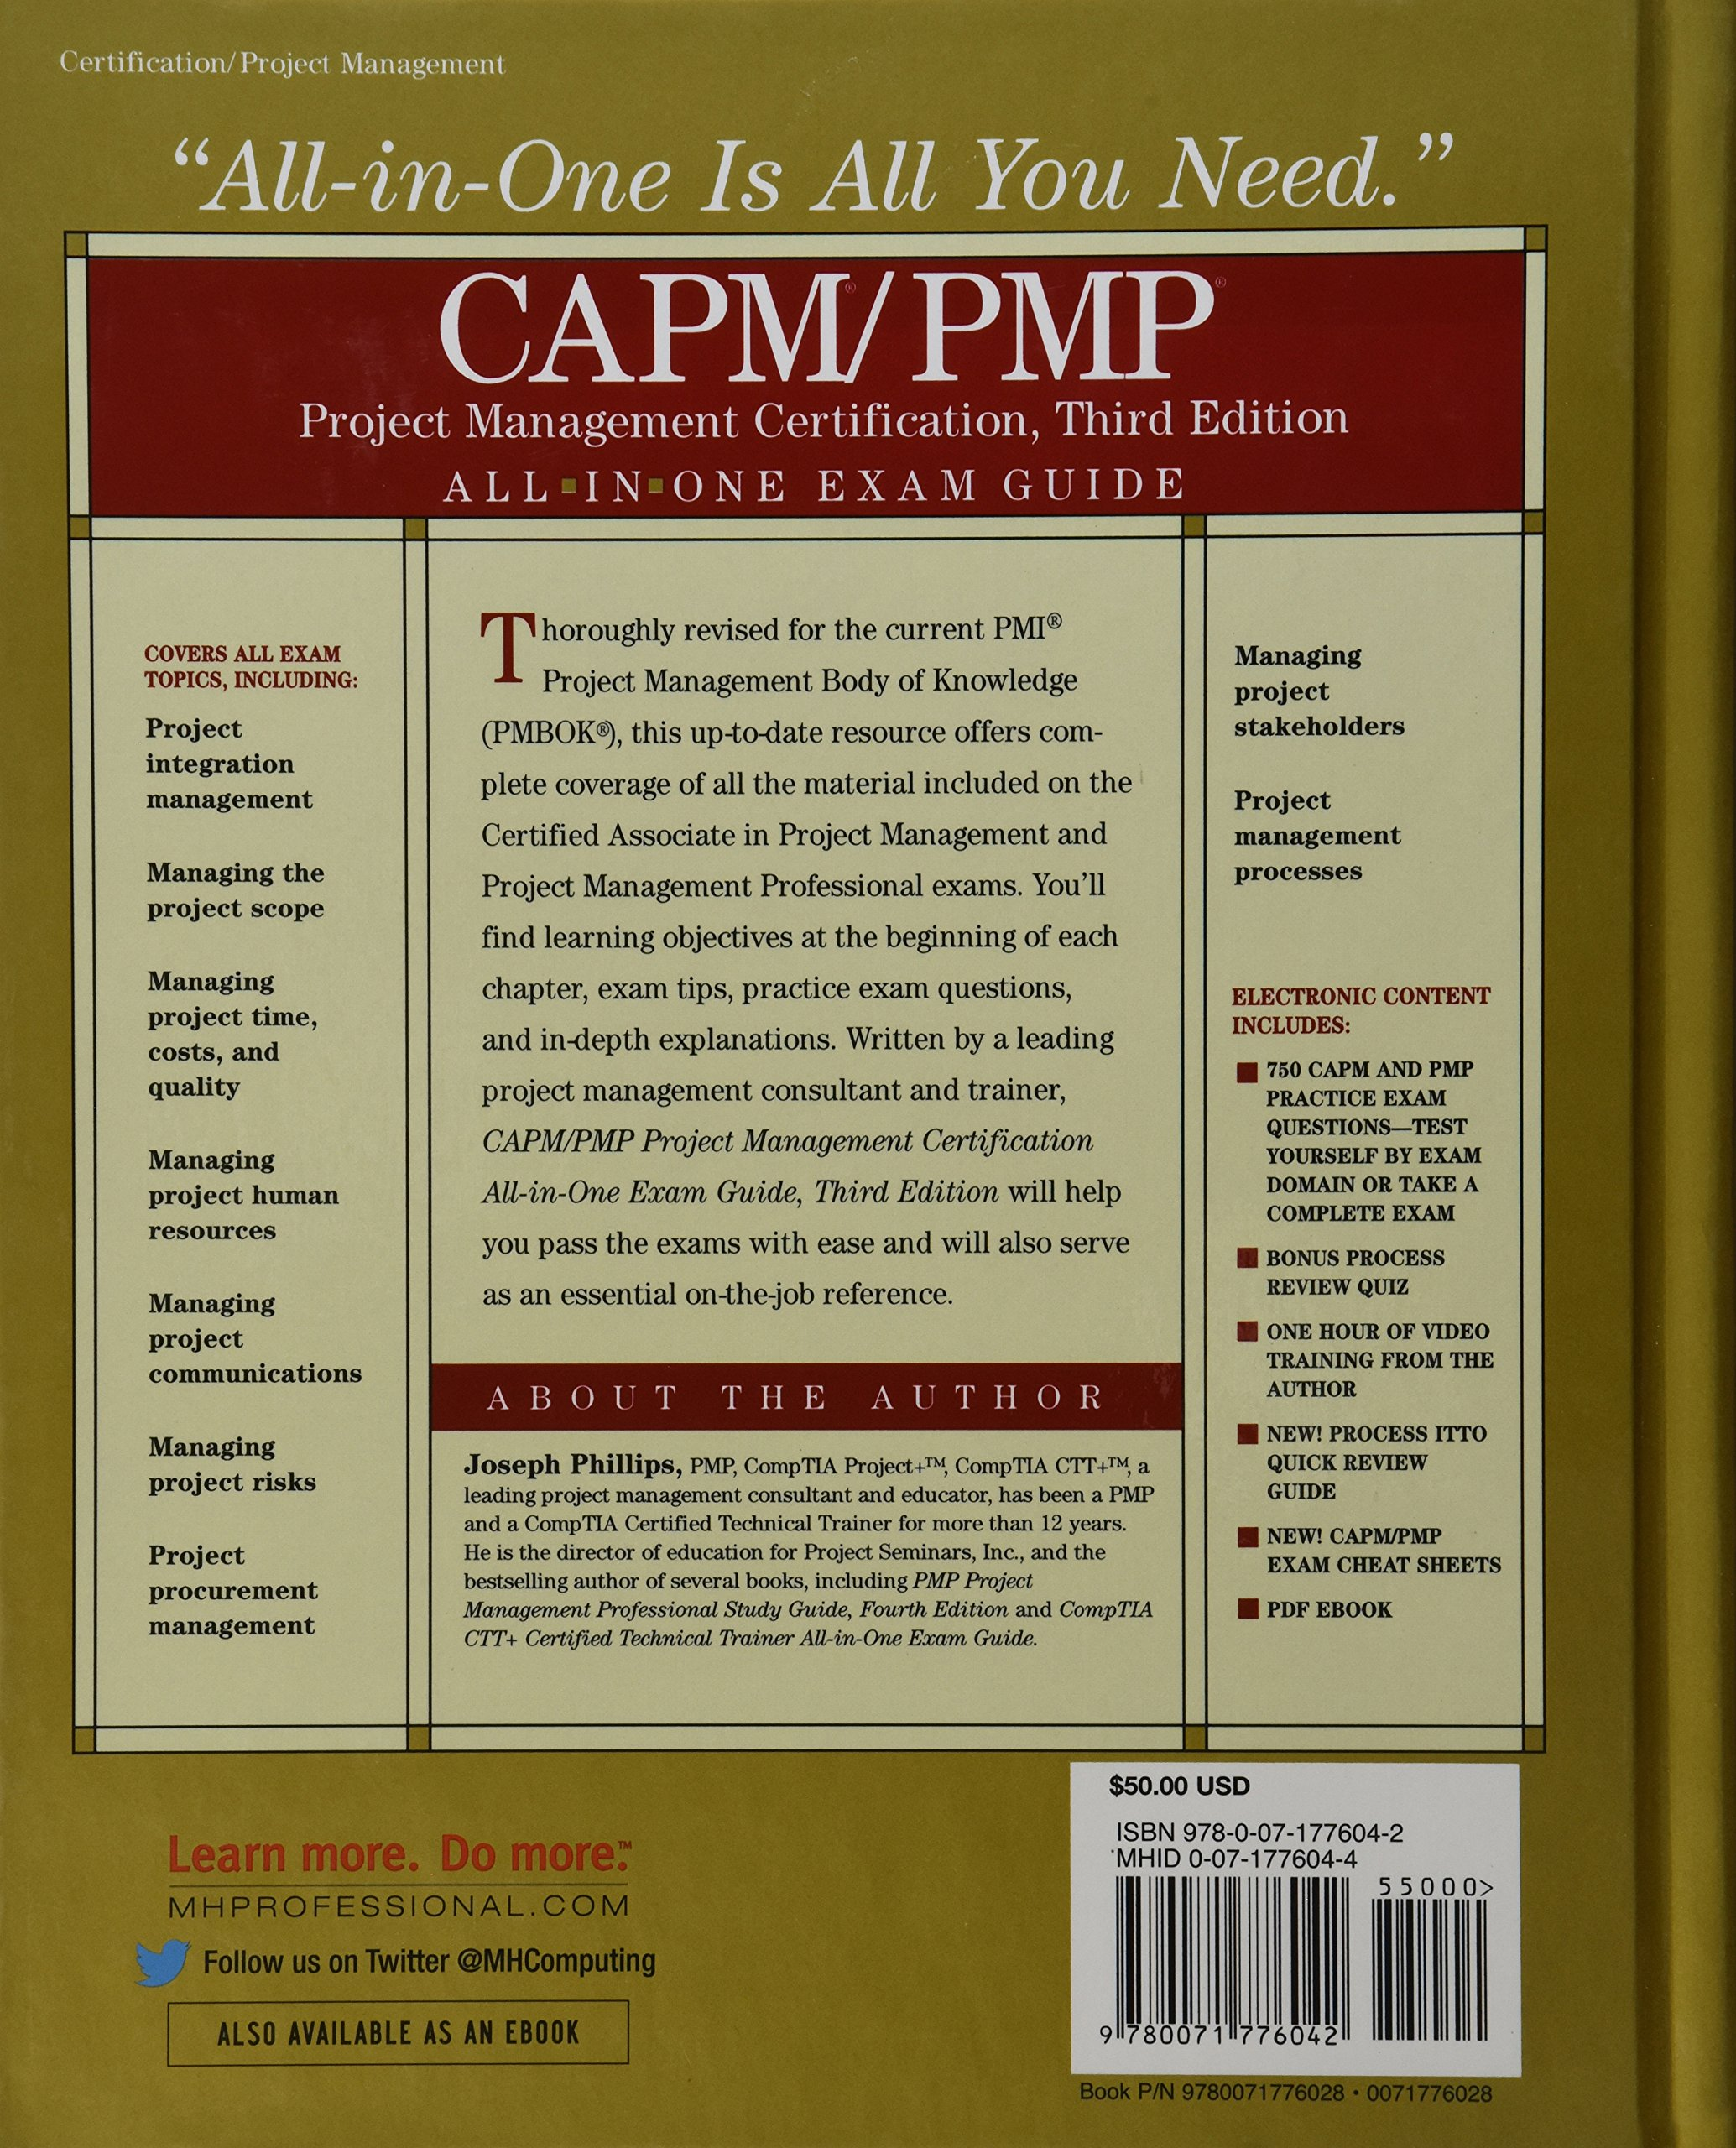 Amazon capmpmp project management certification all in one amazon capmpmp project management certification all in one exam guide third edition 9780071776042 joseph phillips books 1betcityfo Gallery